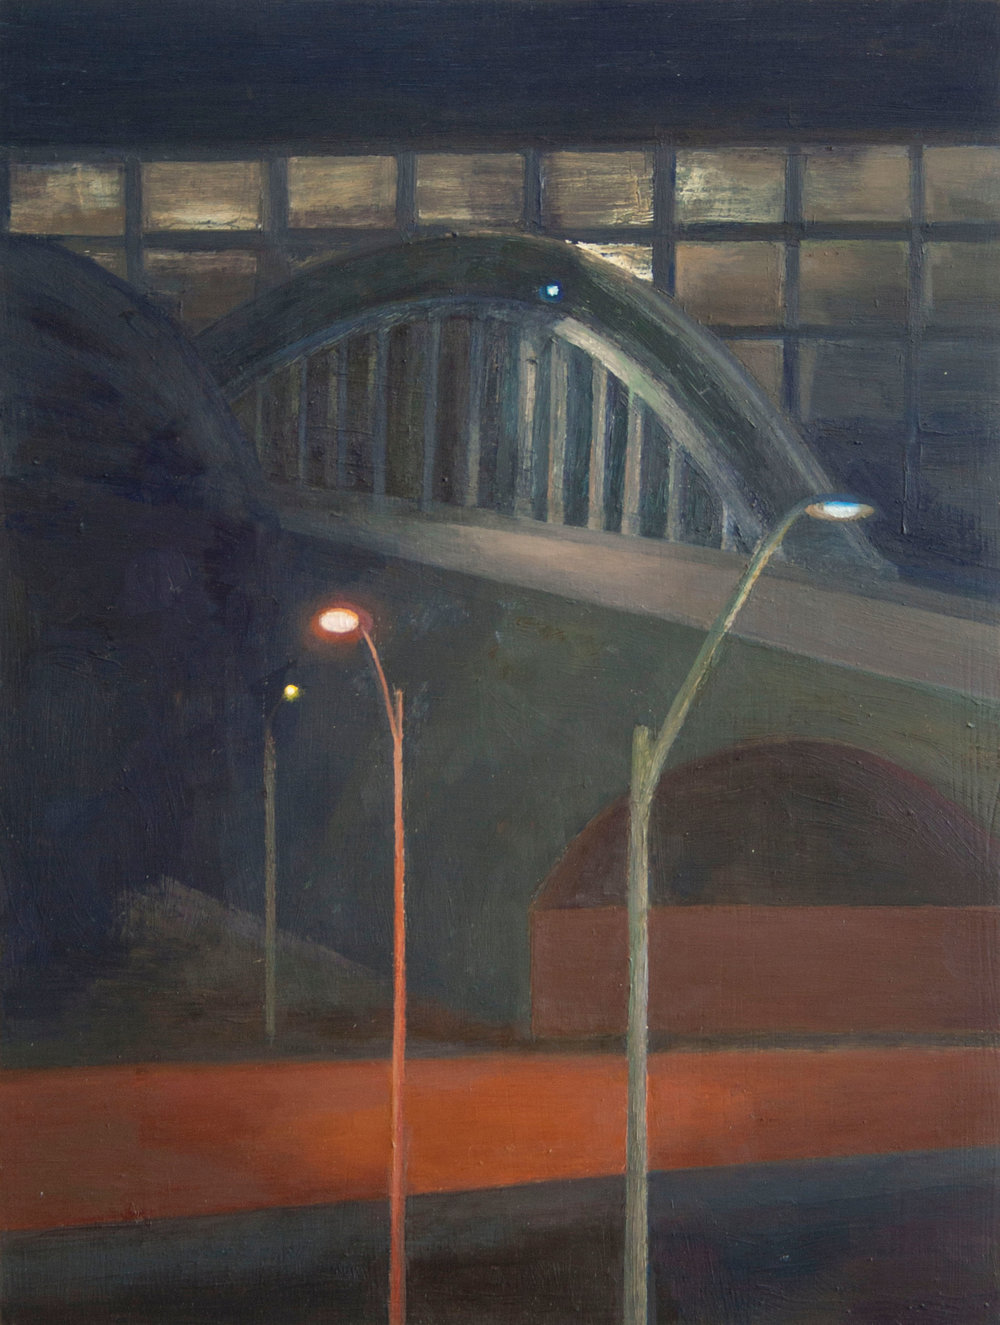 Illuminated Paths, Oil on panel, 19.5 x 14.5 inches, 2015